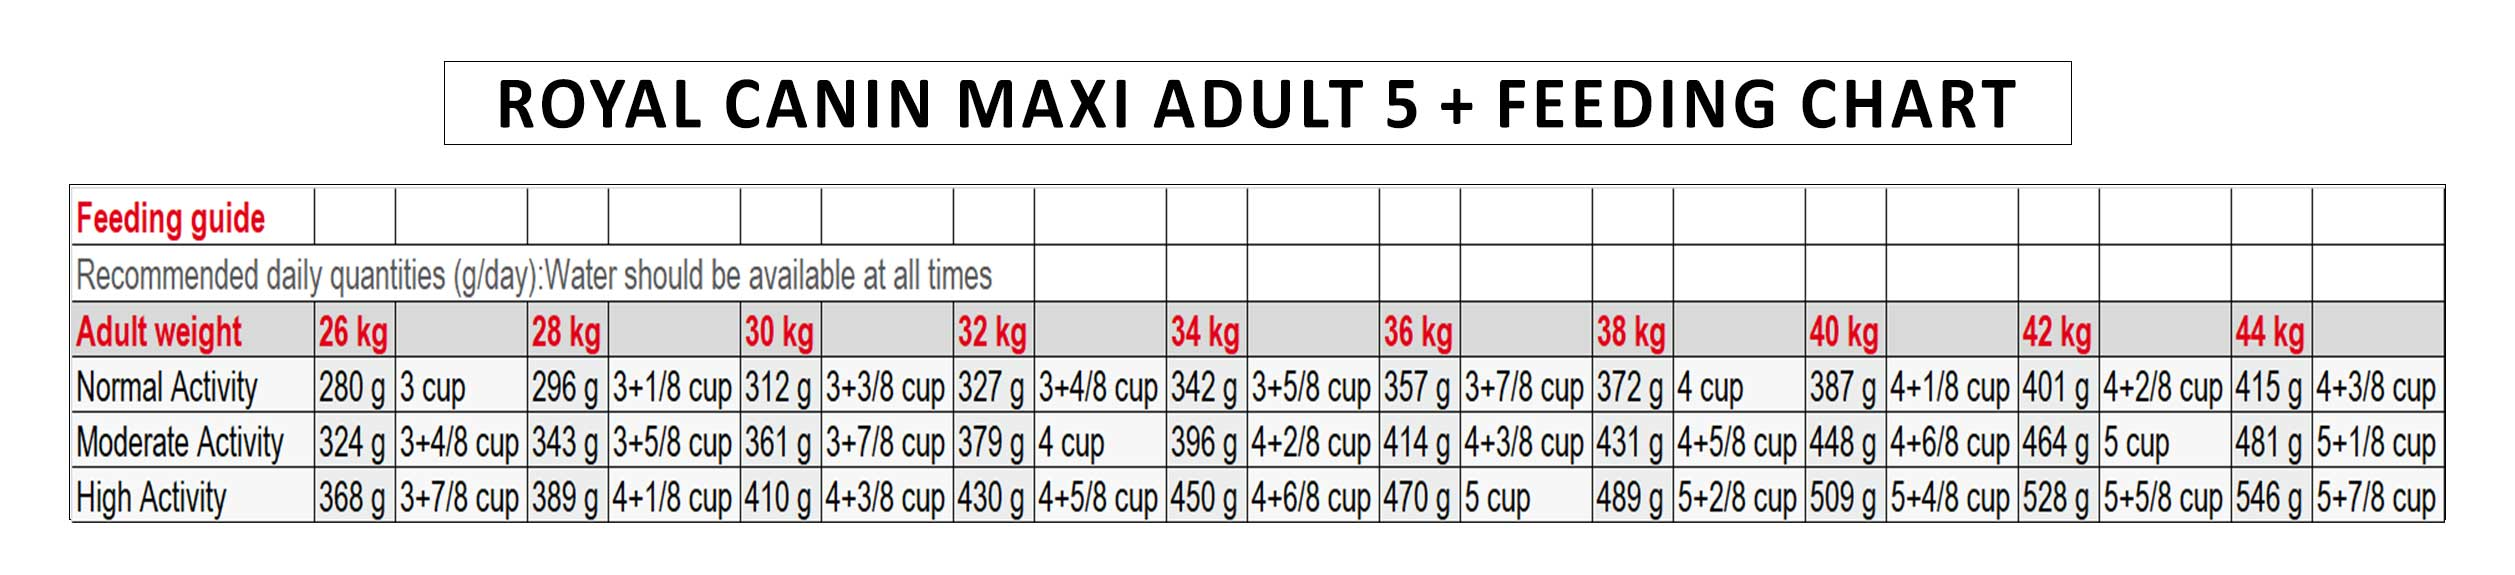 Royal-canin-Maxi-Adult-5-+-feeding-chart-copy-2